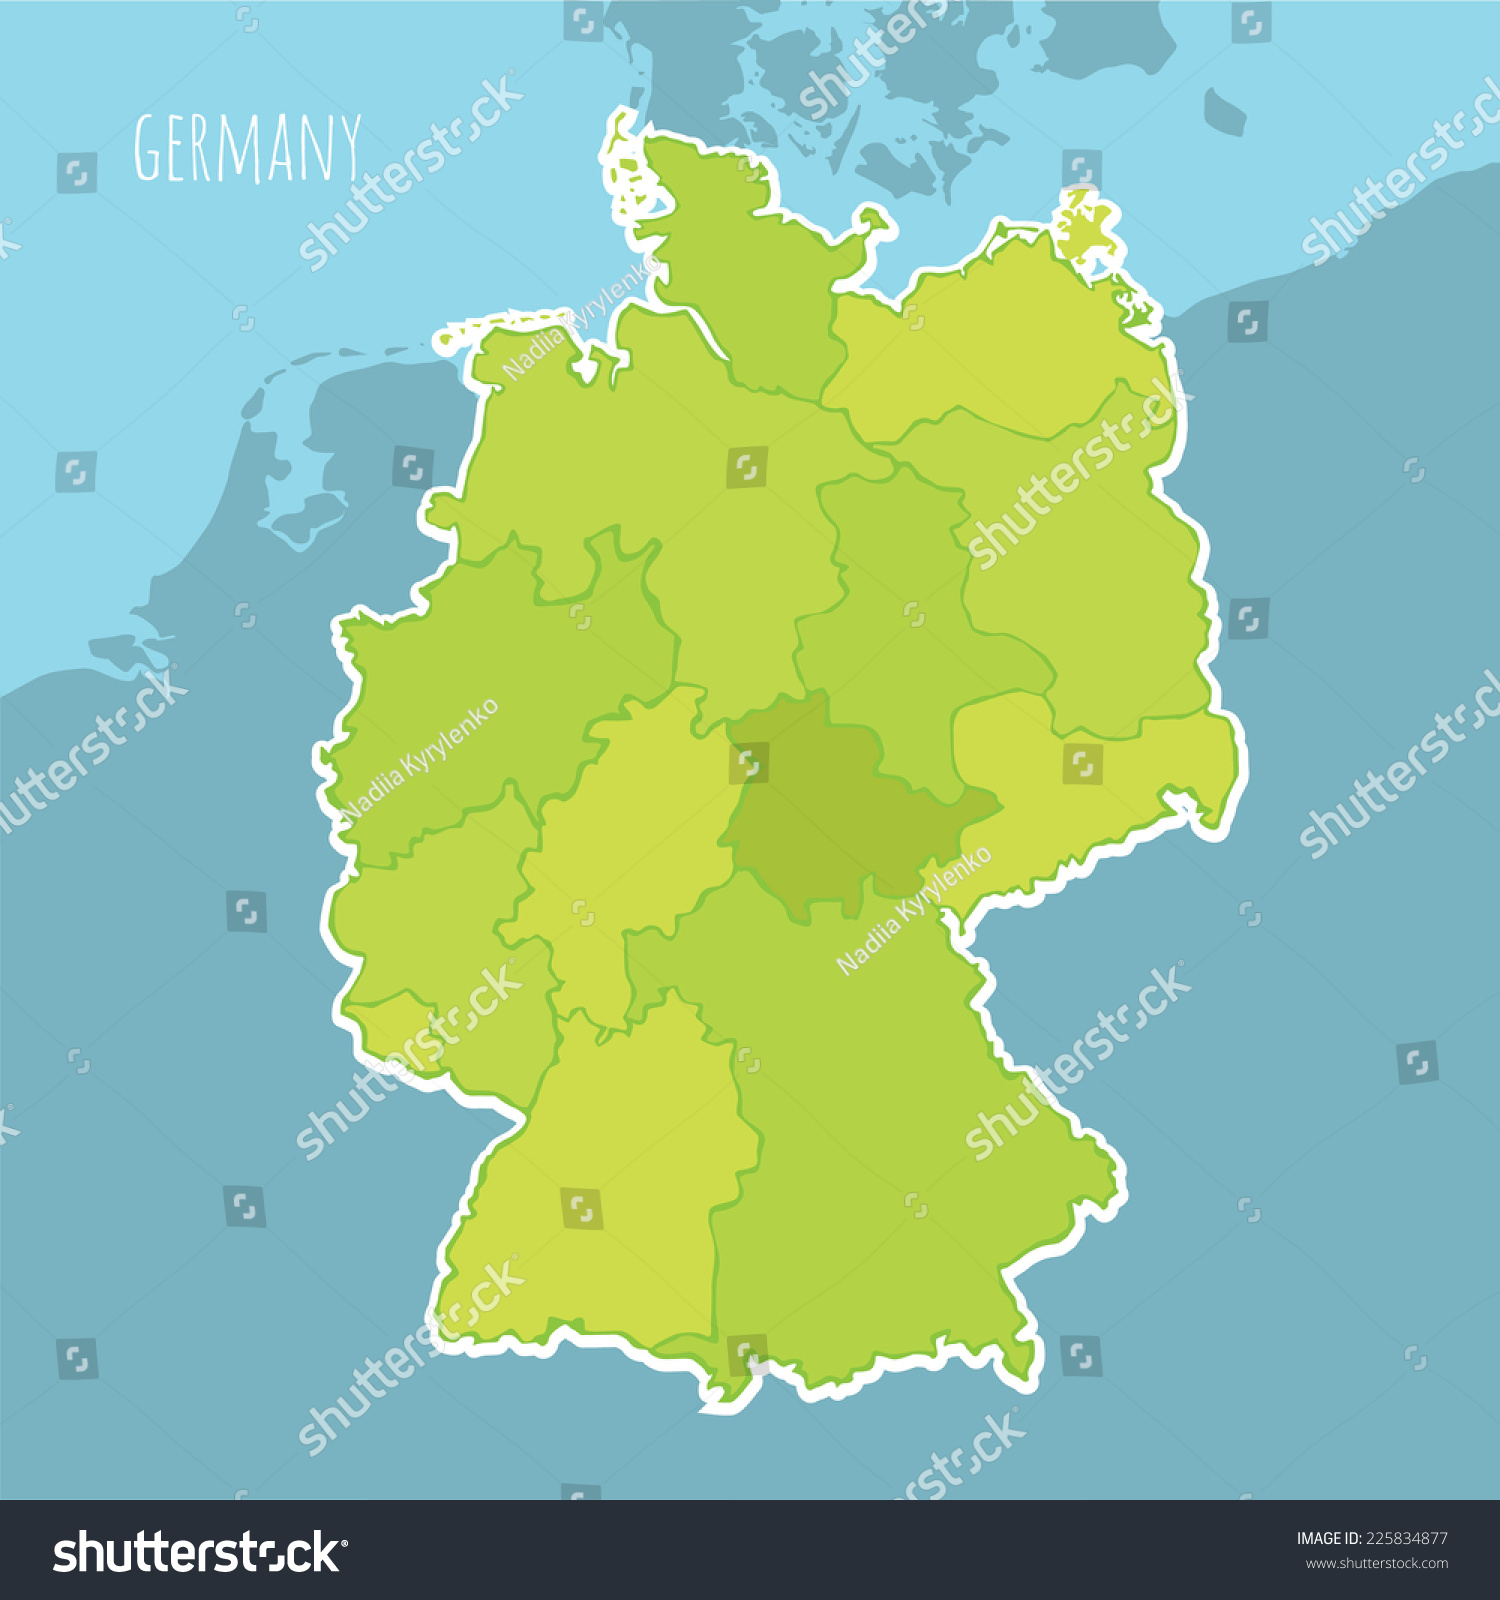 vector map of germany divided into the regions